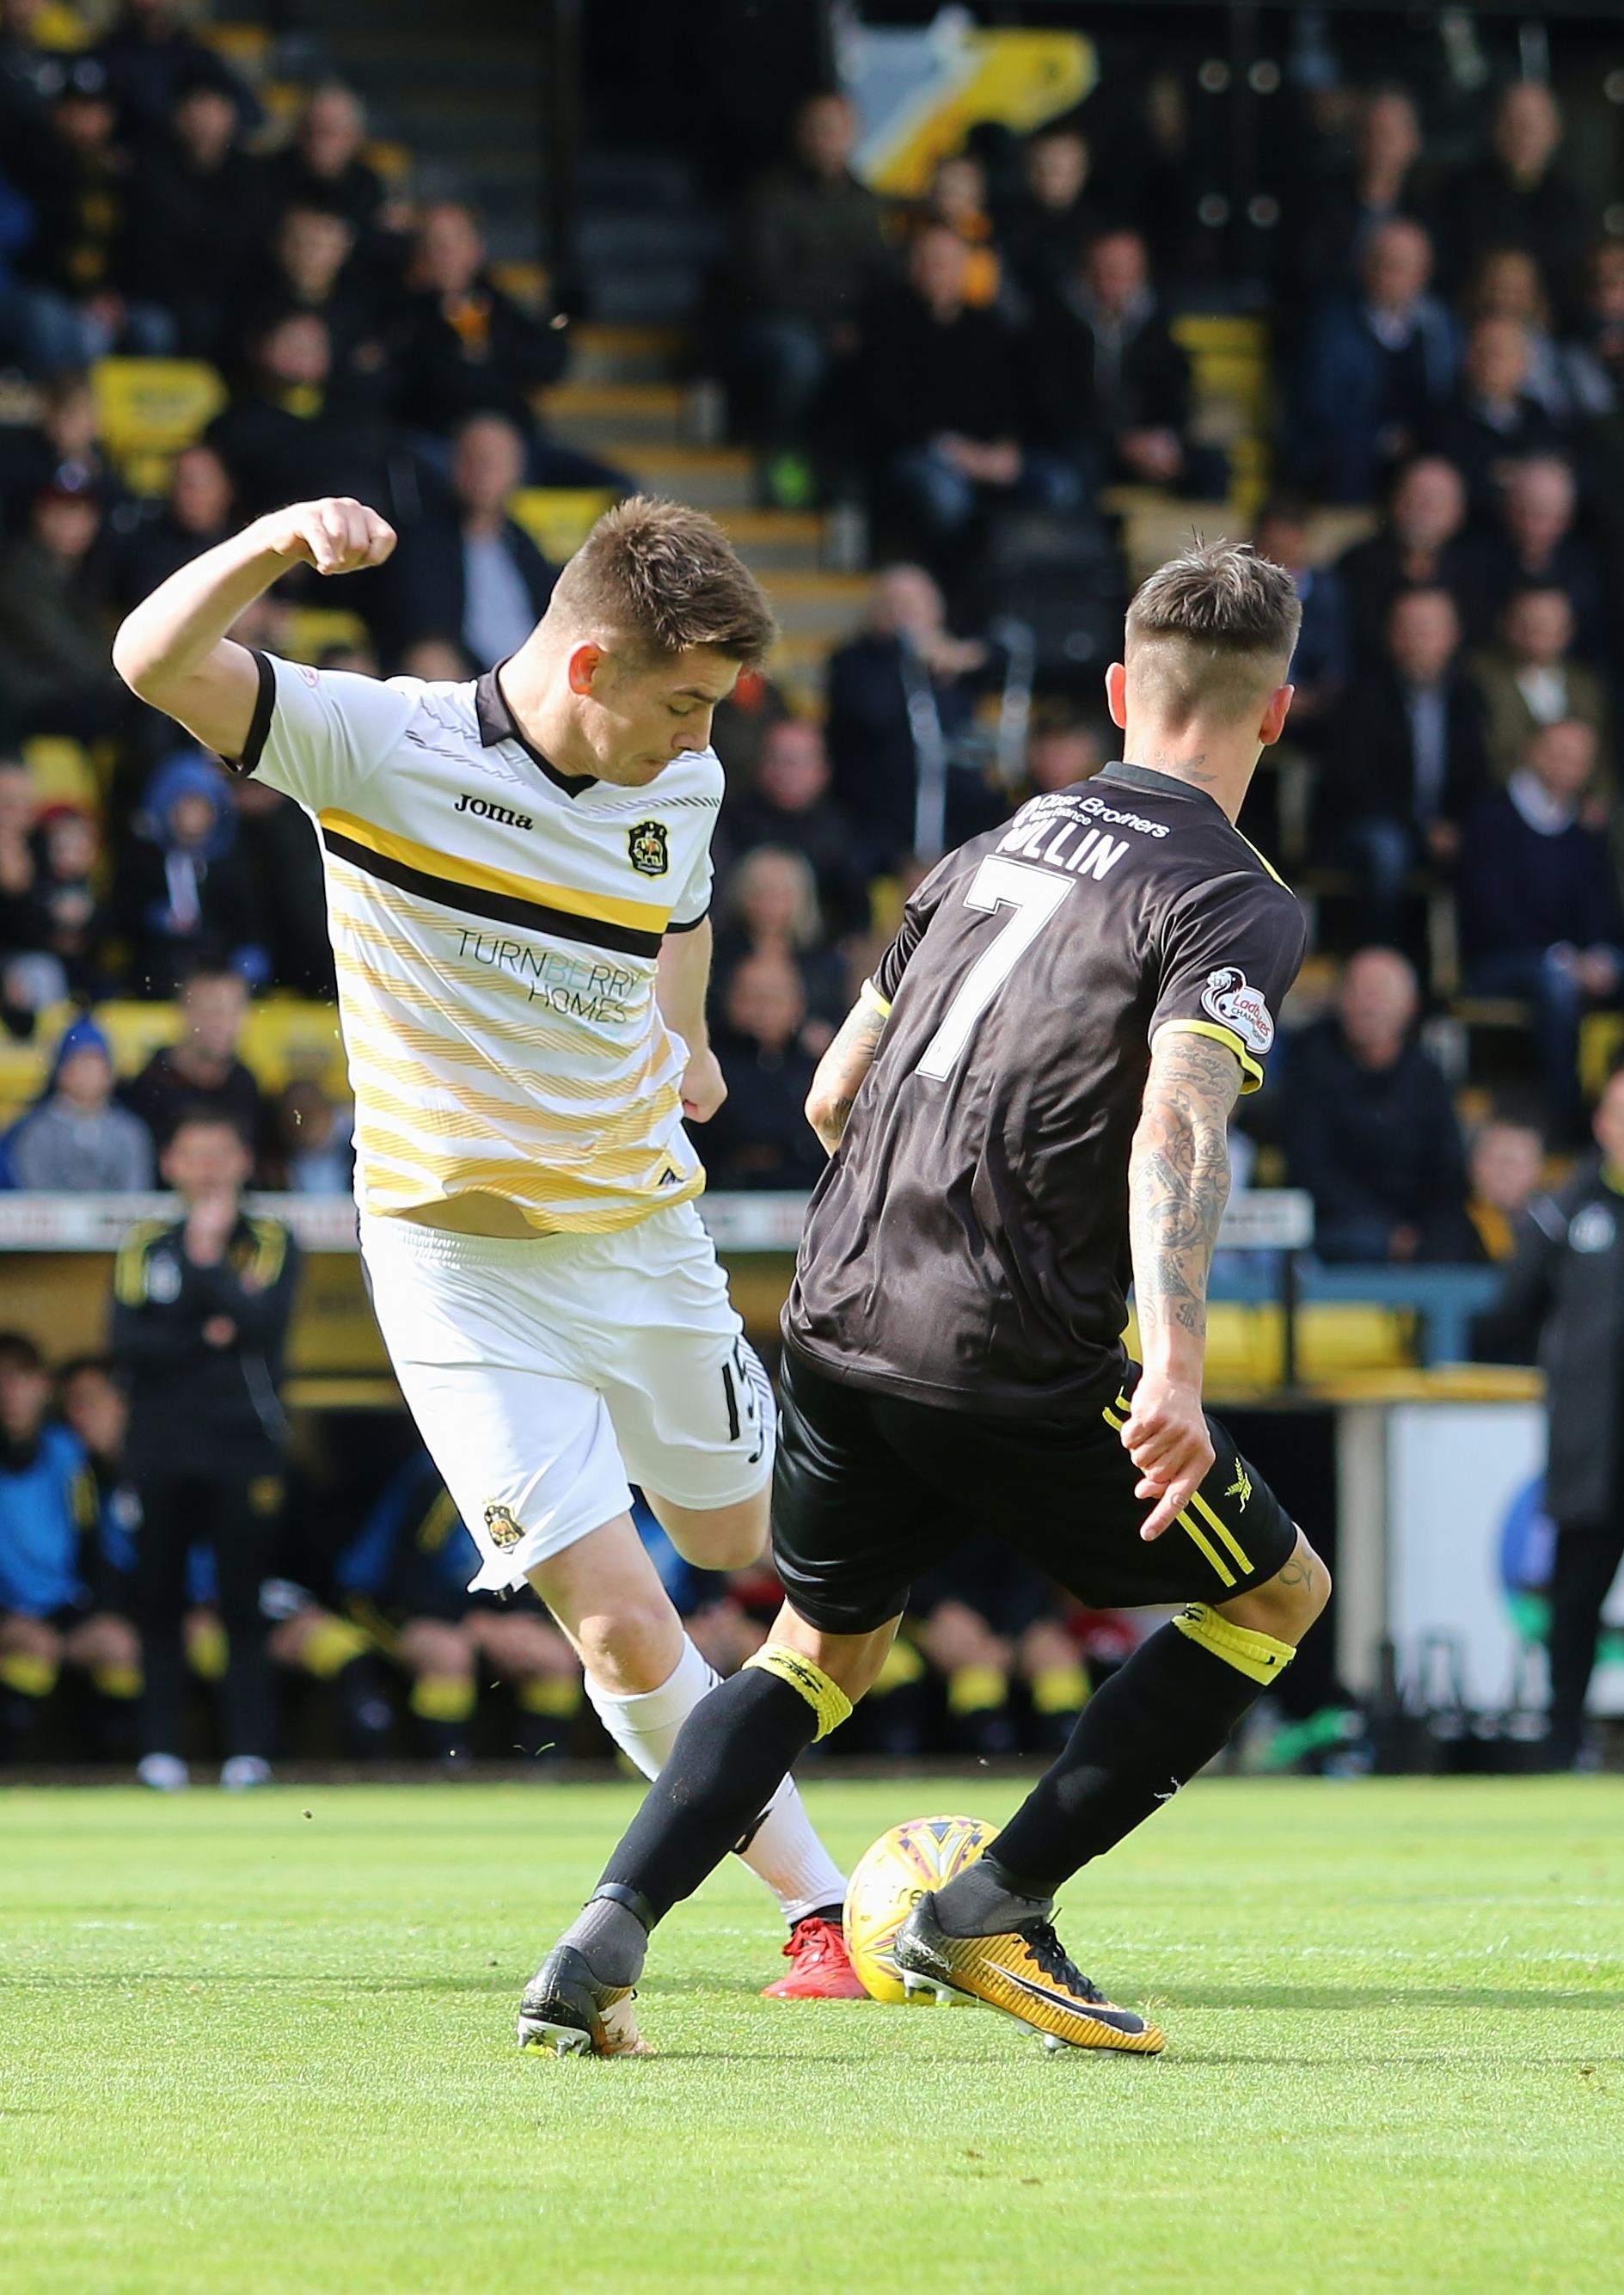 Dumbarton defender Dougie Hill frustrated after Livingston defeat